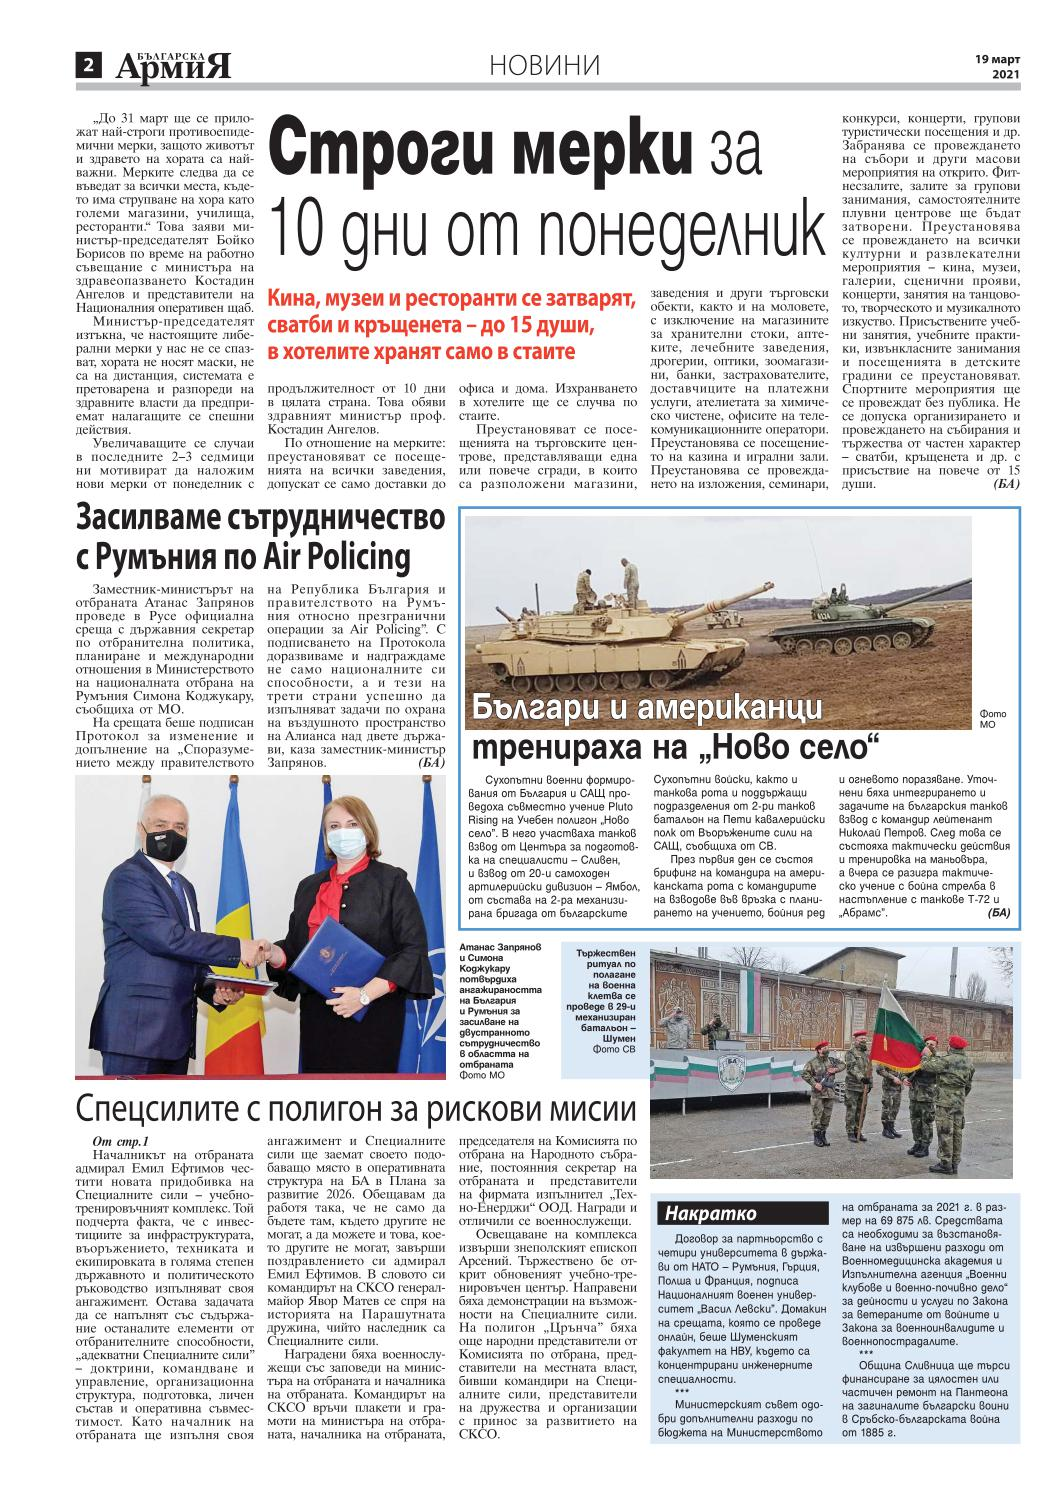 https://armymedia.bg/wp-content/uploads/2021/04/02.page1_-151.jpg